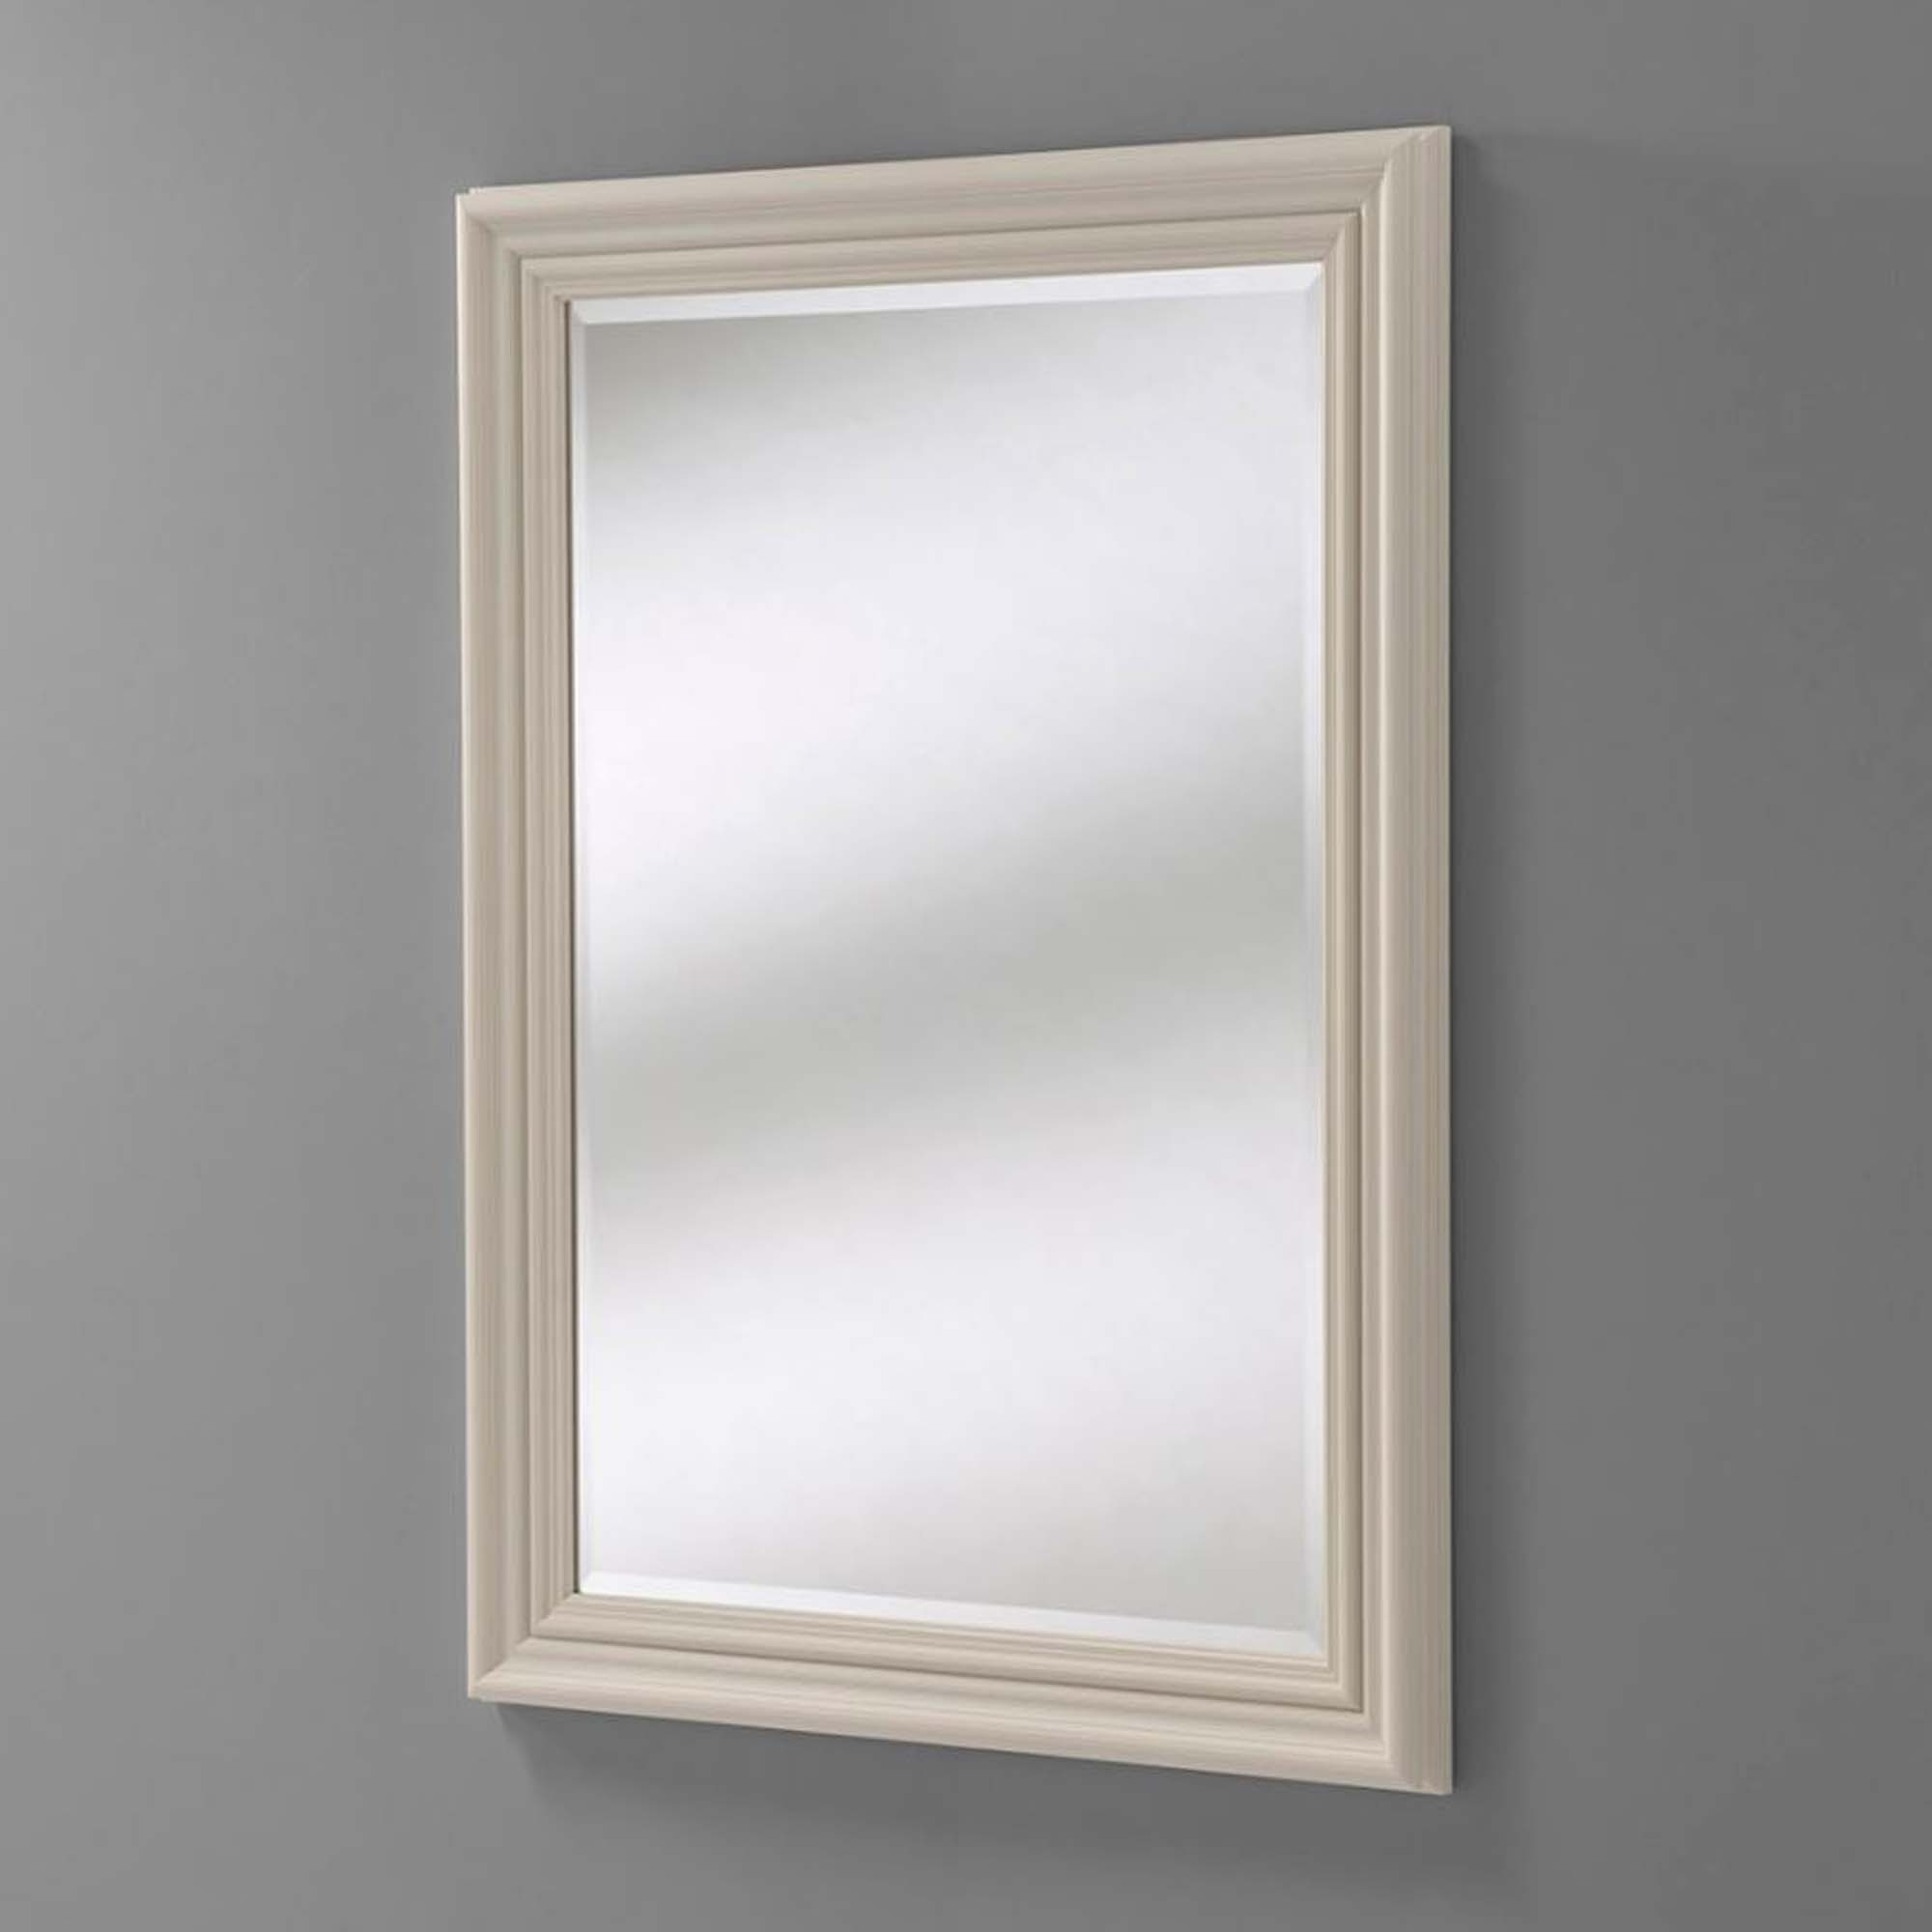 Widely Used Bevelled Wall Mirrors With Bevelled Ivory Rectangular Wall Mirror (View 18 of 20)